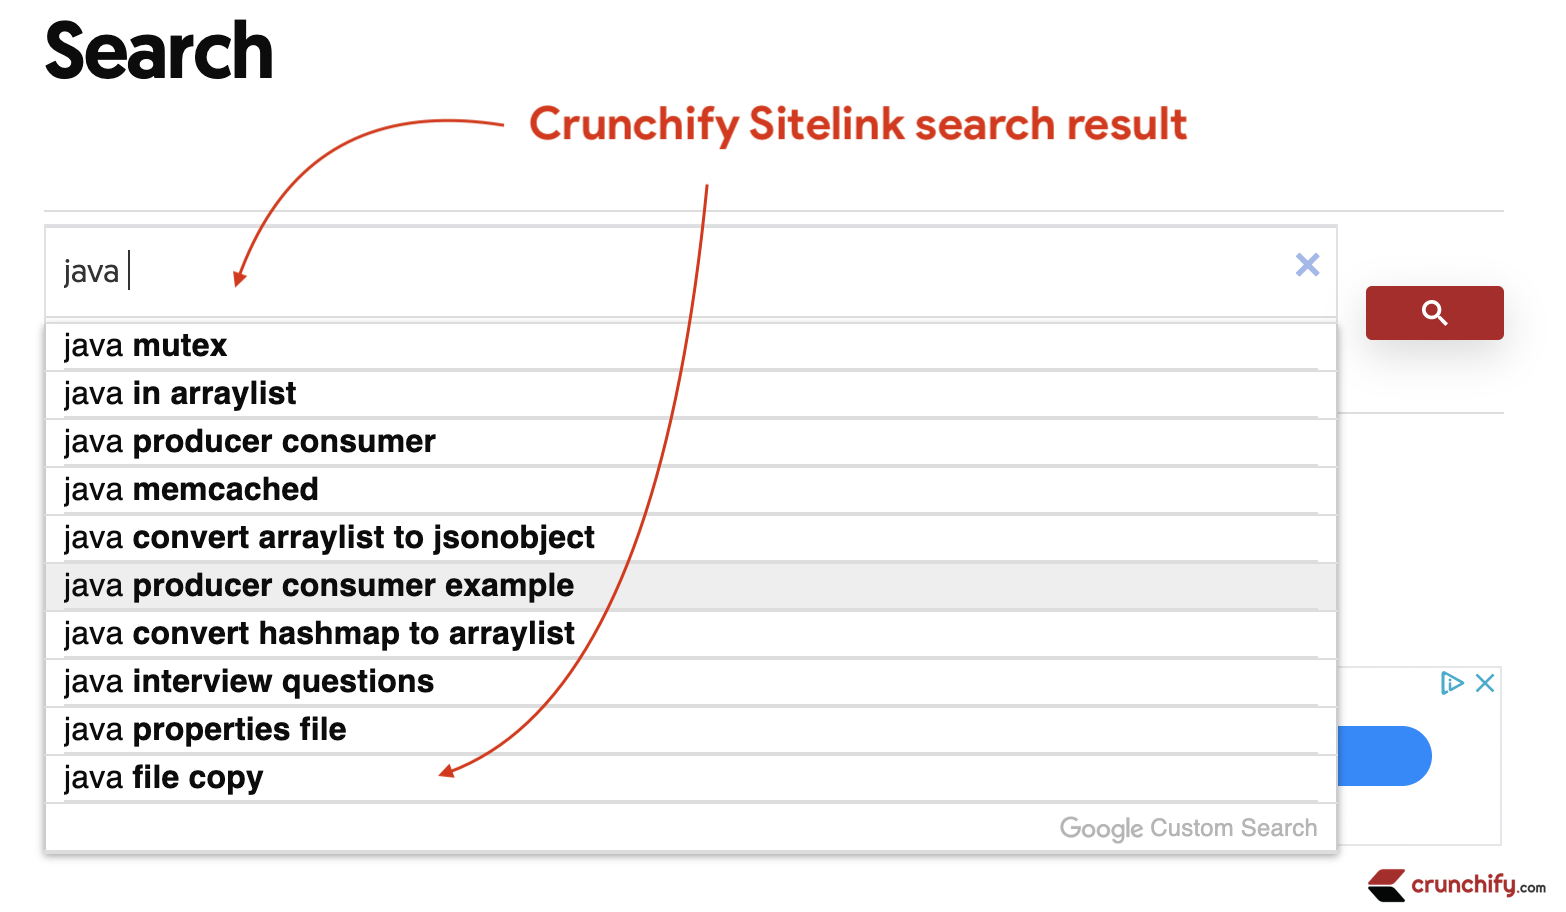 Crunchify Sitelink search result